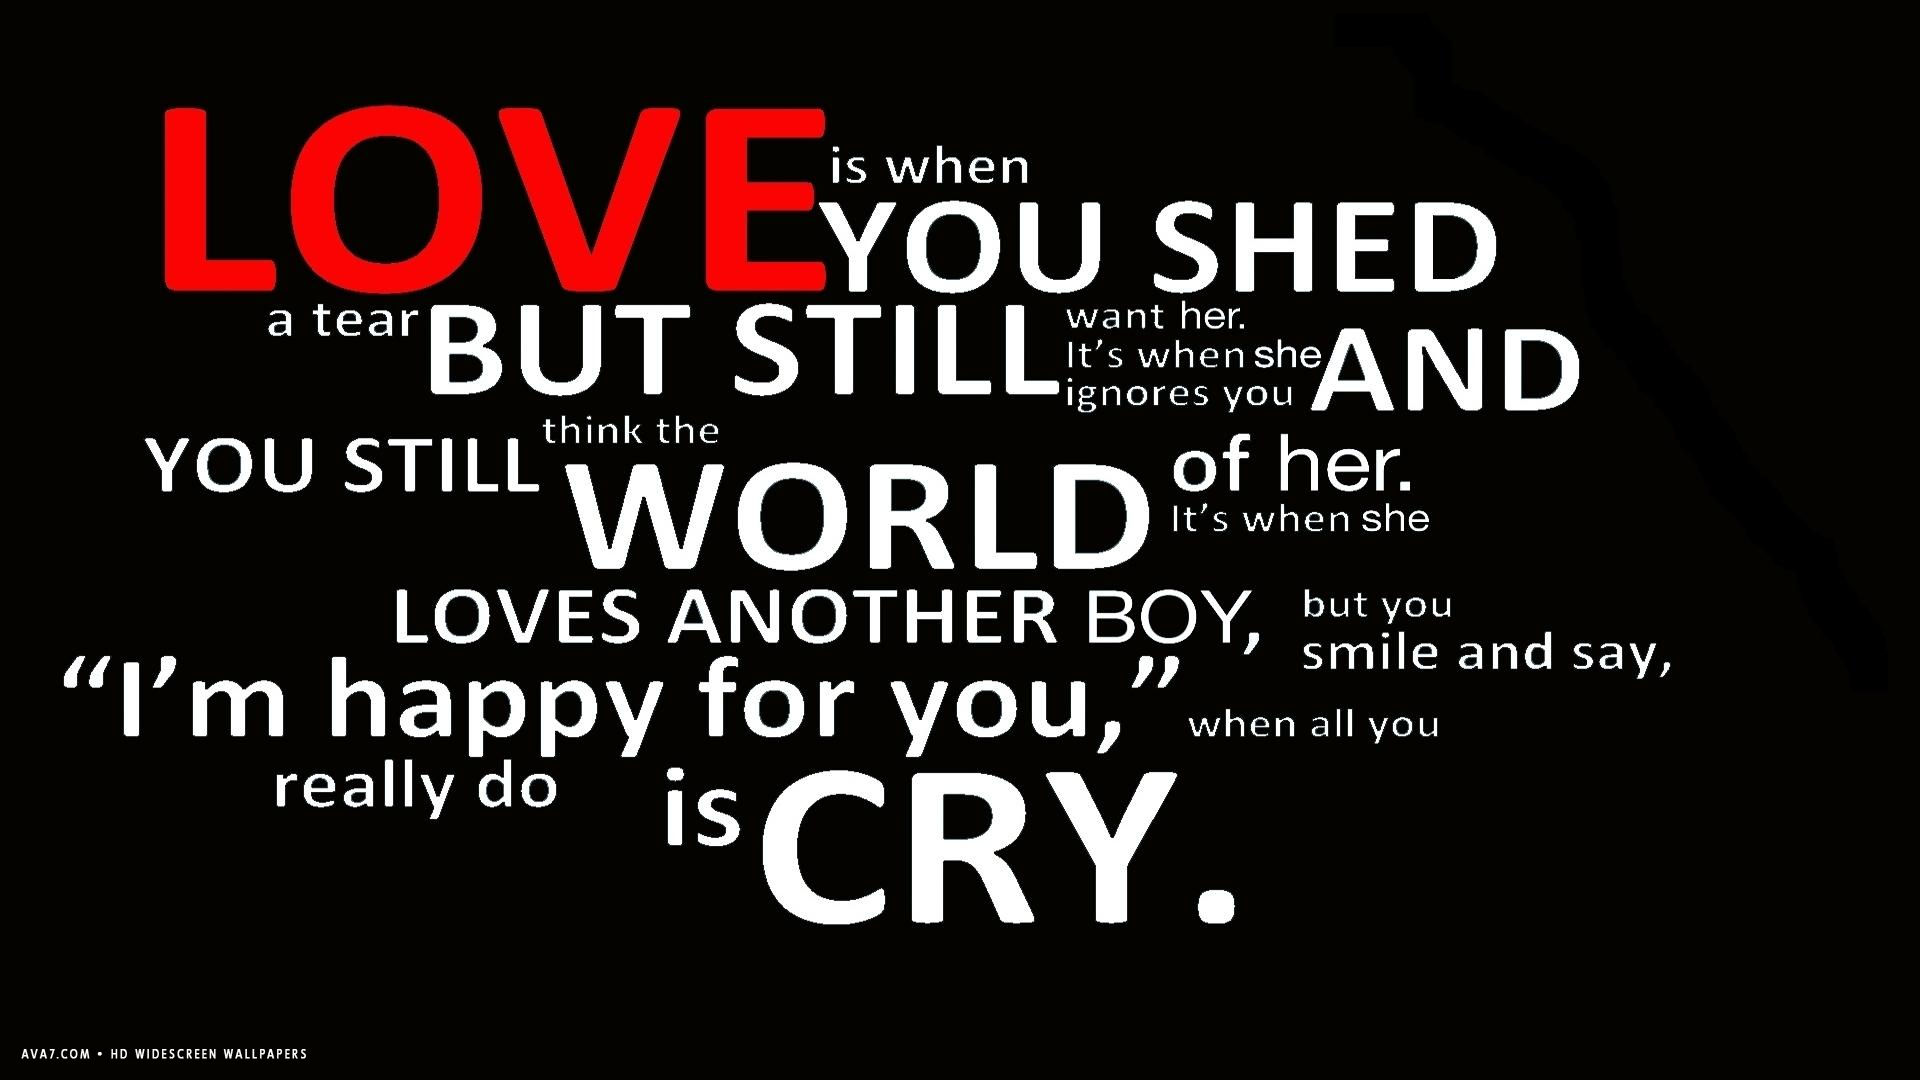 Quote On Love Love Quote World Happy Cry Words White Text Hd Widescreen